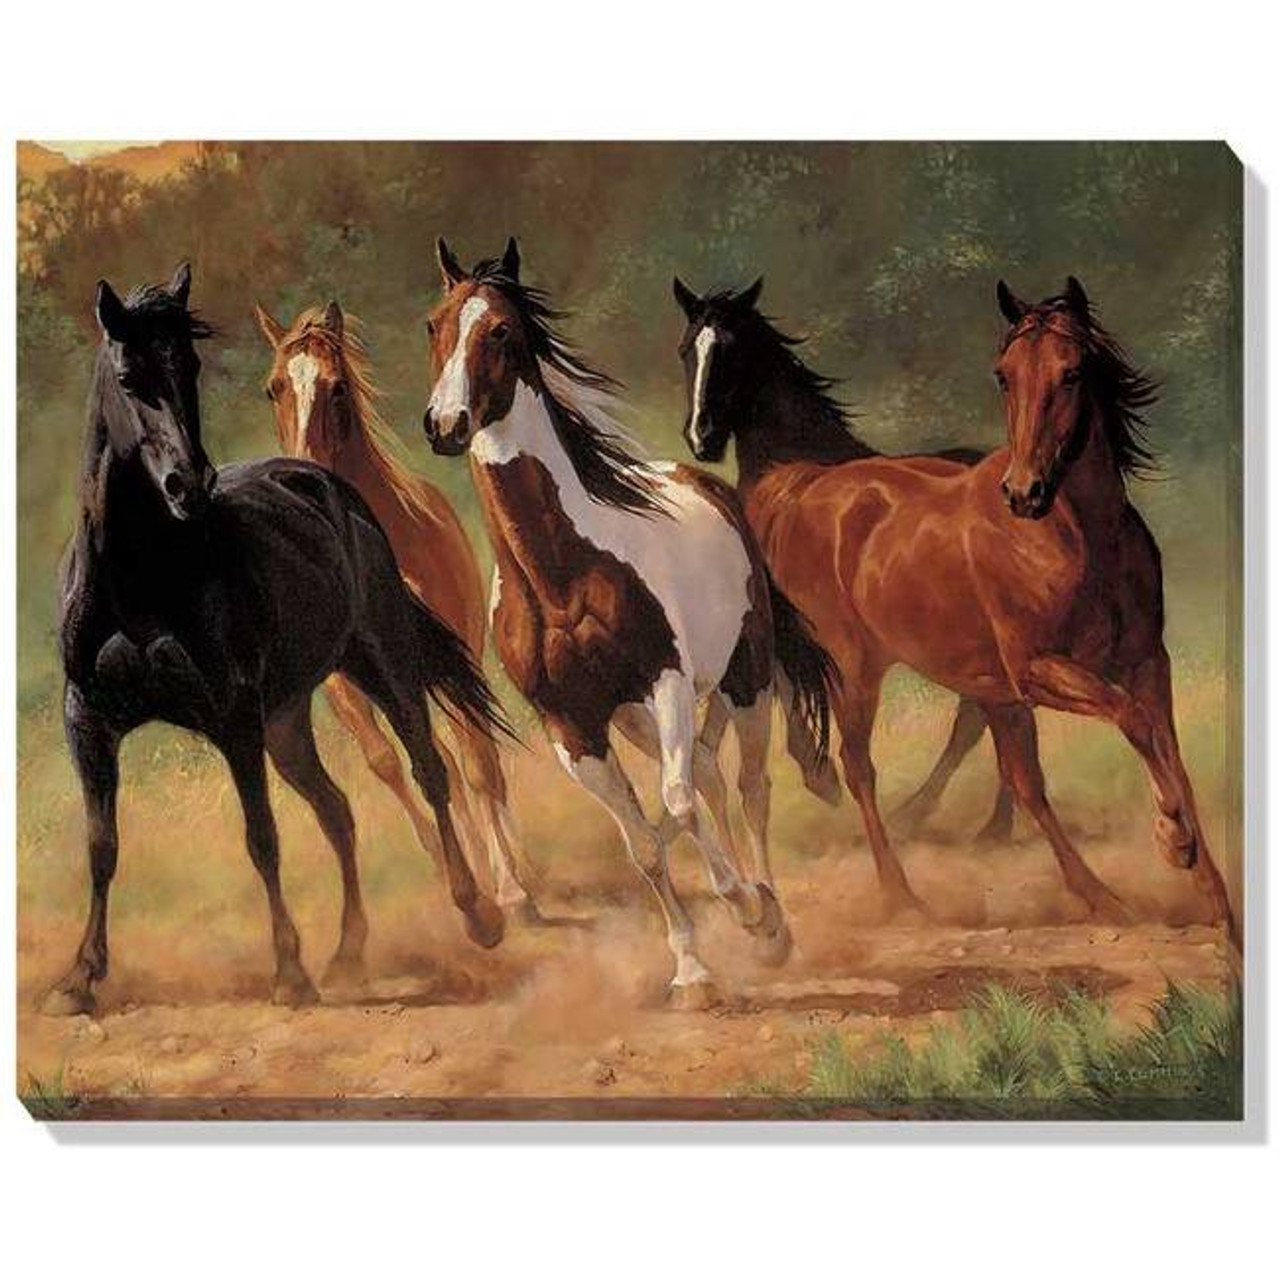 Eurographics 1751-1199 Mustang Horses Running Wyoming Stretched Canvas 24x36